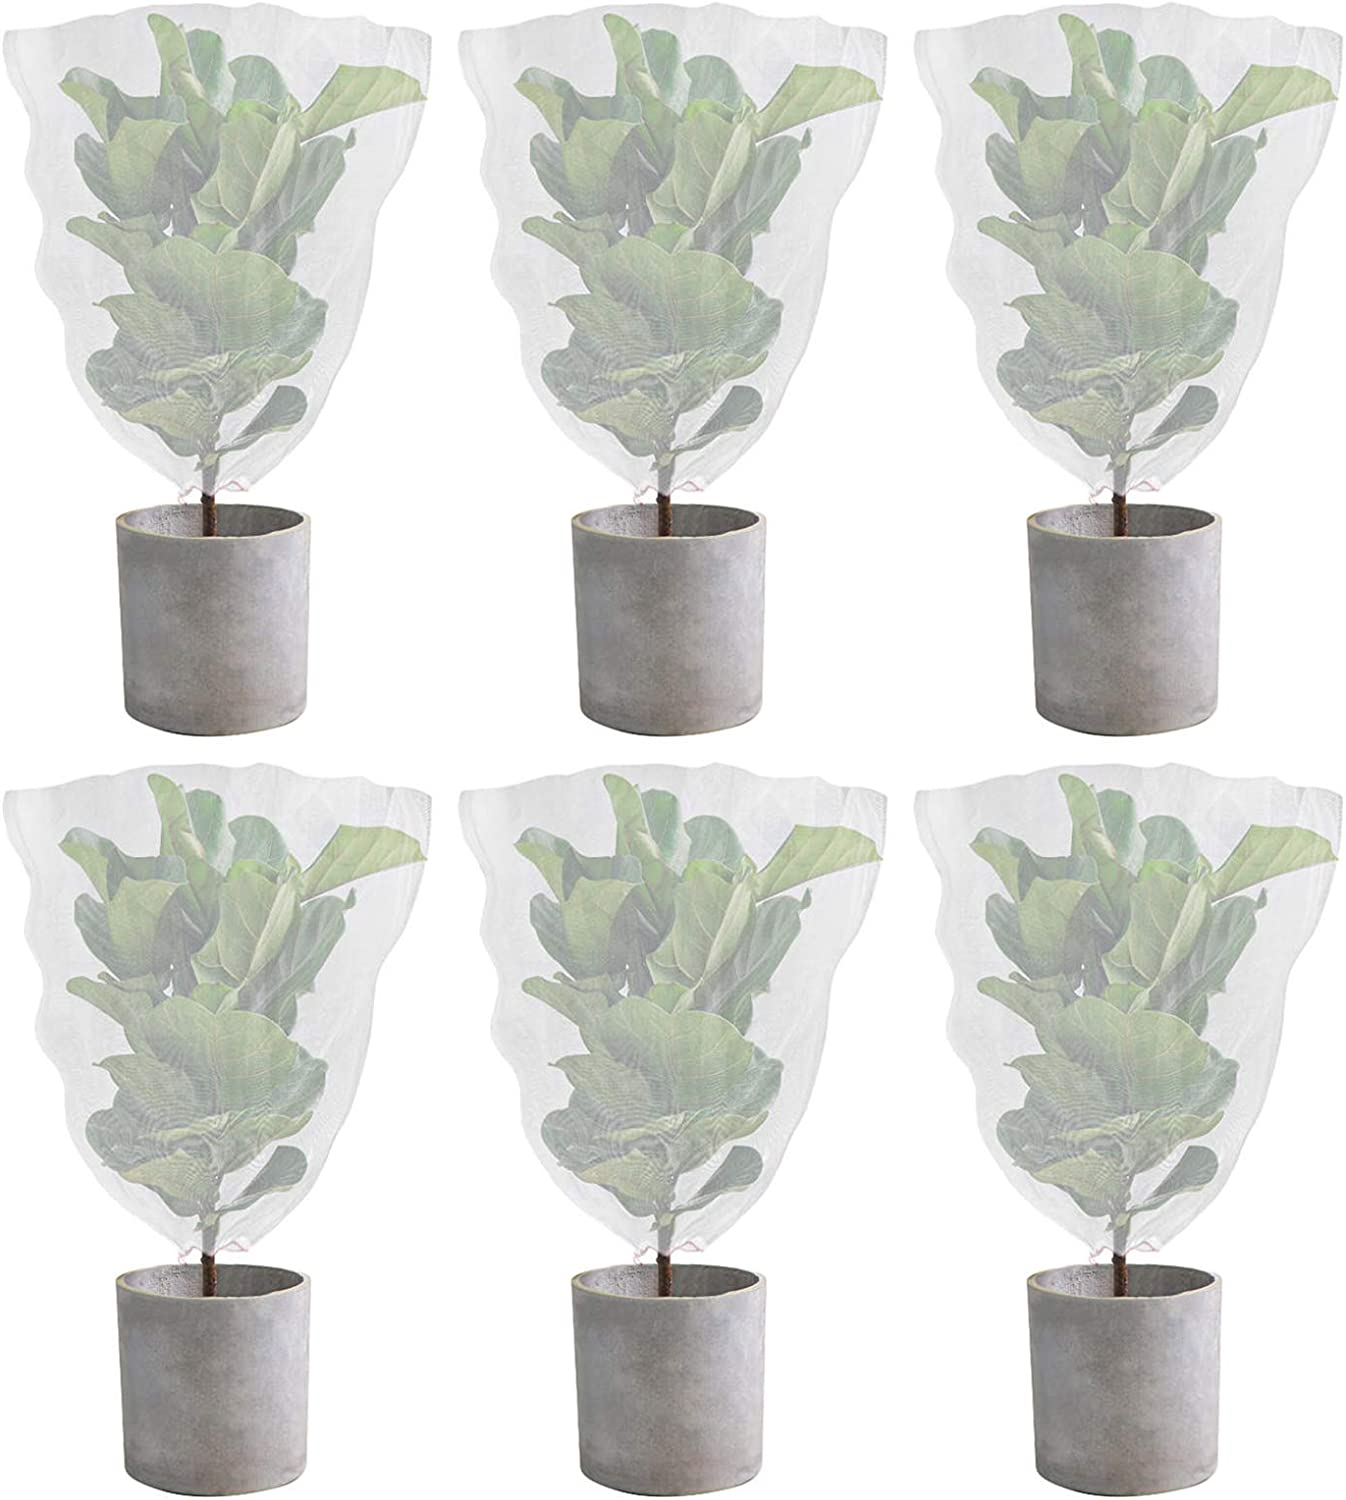 Yopay 6 Pack Barrier Net Mesh with Drawstring, 3.4Ft x 2.3Ft Garden Plant Bird Barrier Cover to Protect Plant Fruits Trees Flower from Insect Bird Eating, Extra Strong, Ventilated